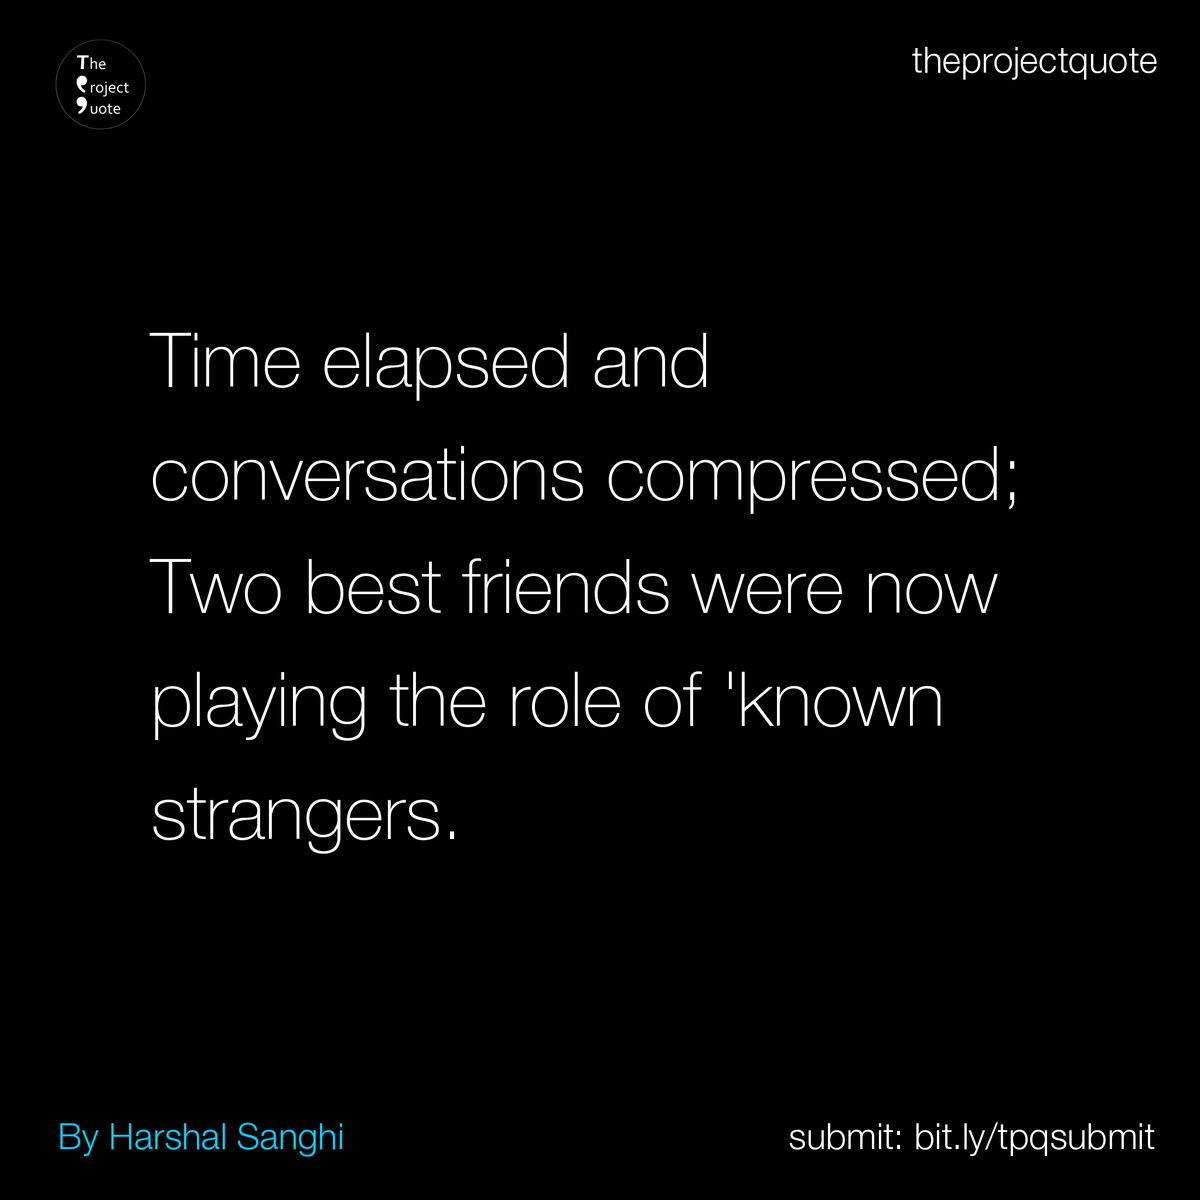 By Harshal Sanghi (@the_writerschoice_) . Follow us @theprojectquote #theprojectquote #twitter #writersofinstagram #writersofig #writersofindiapic.twitter.com/SKUqBpUqRq